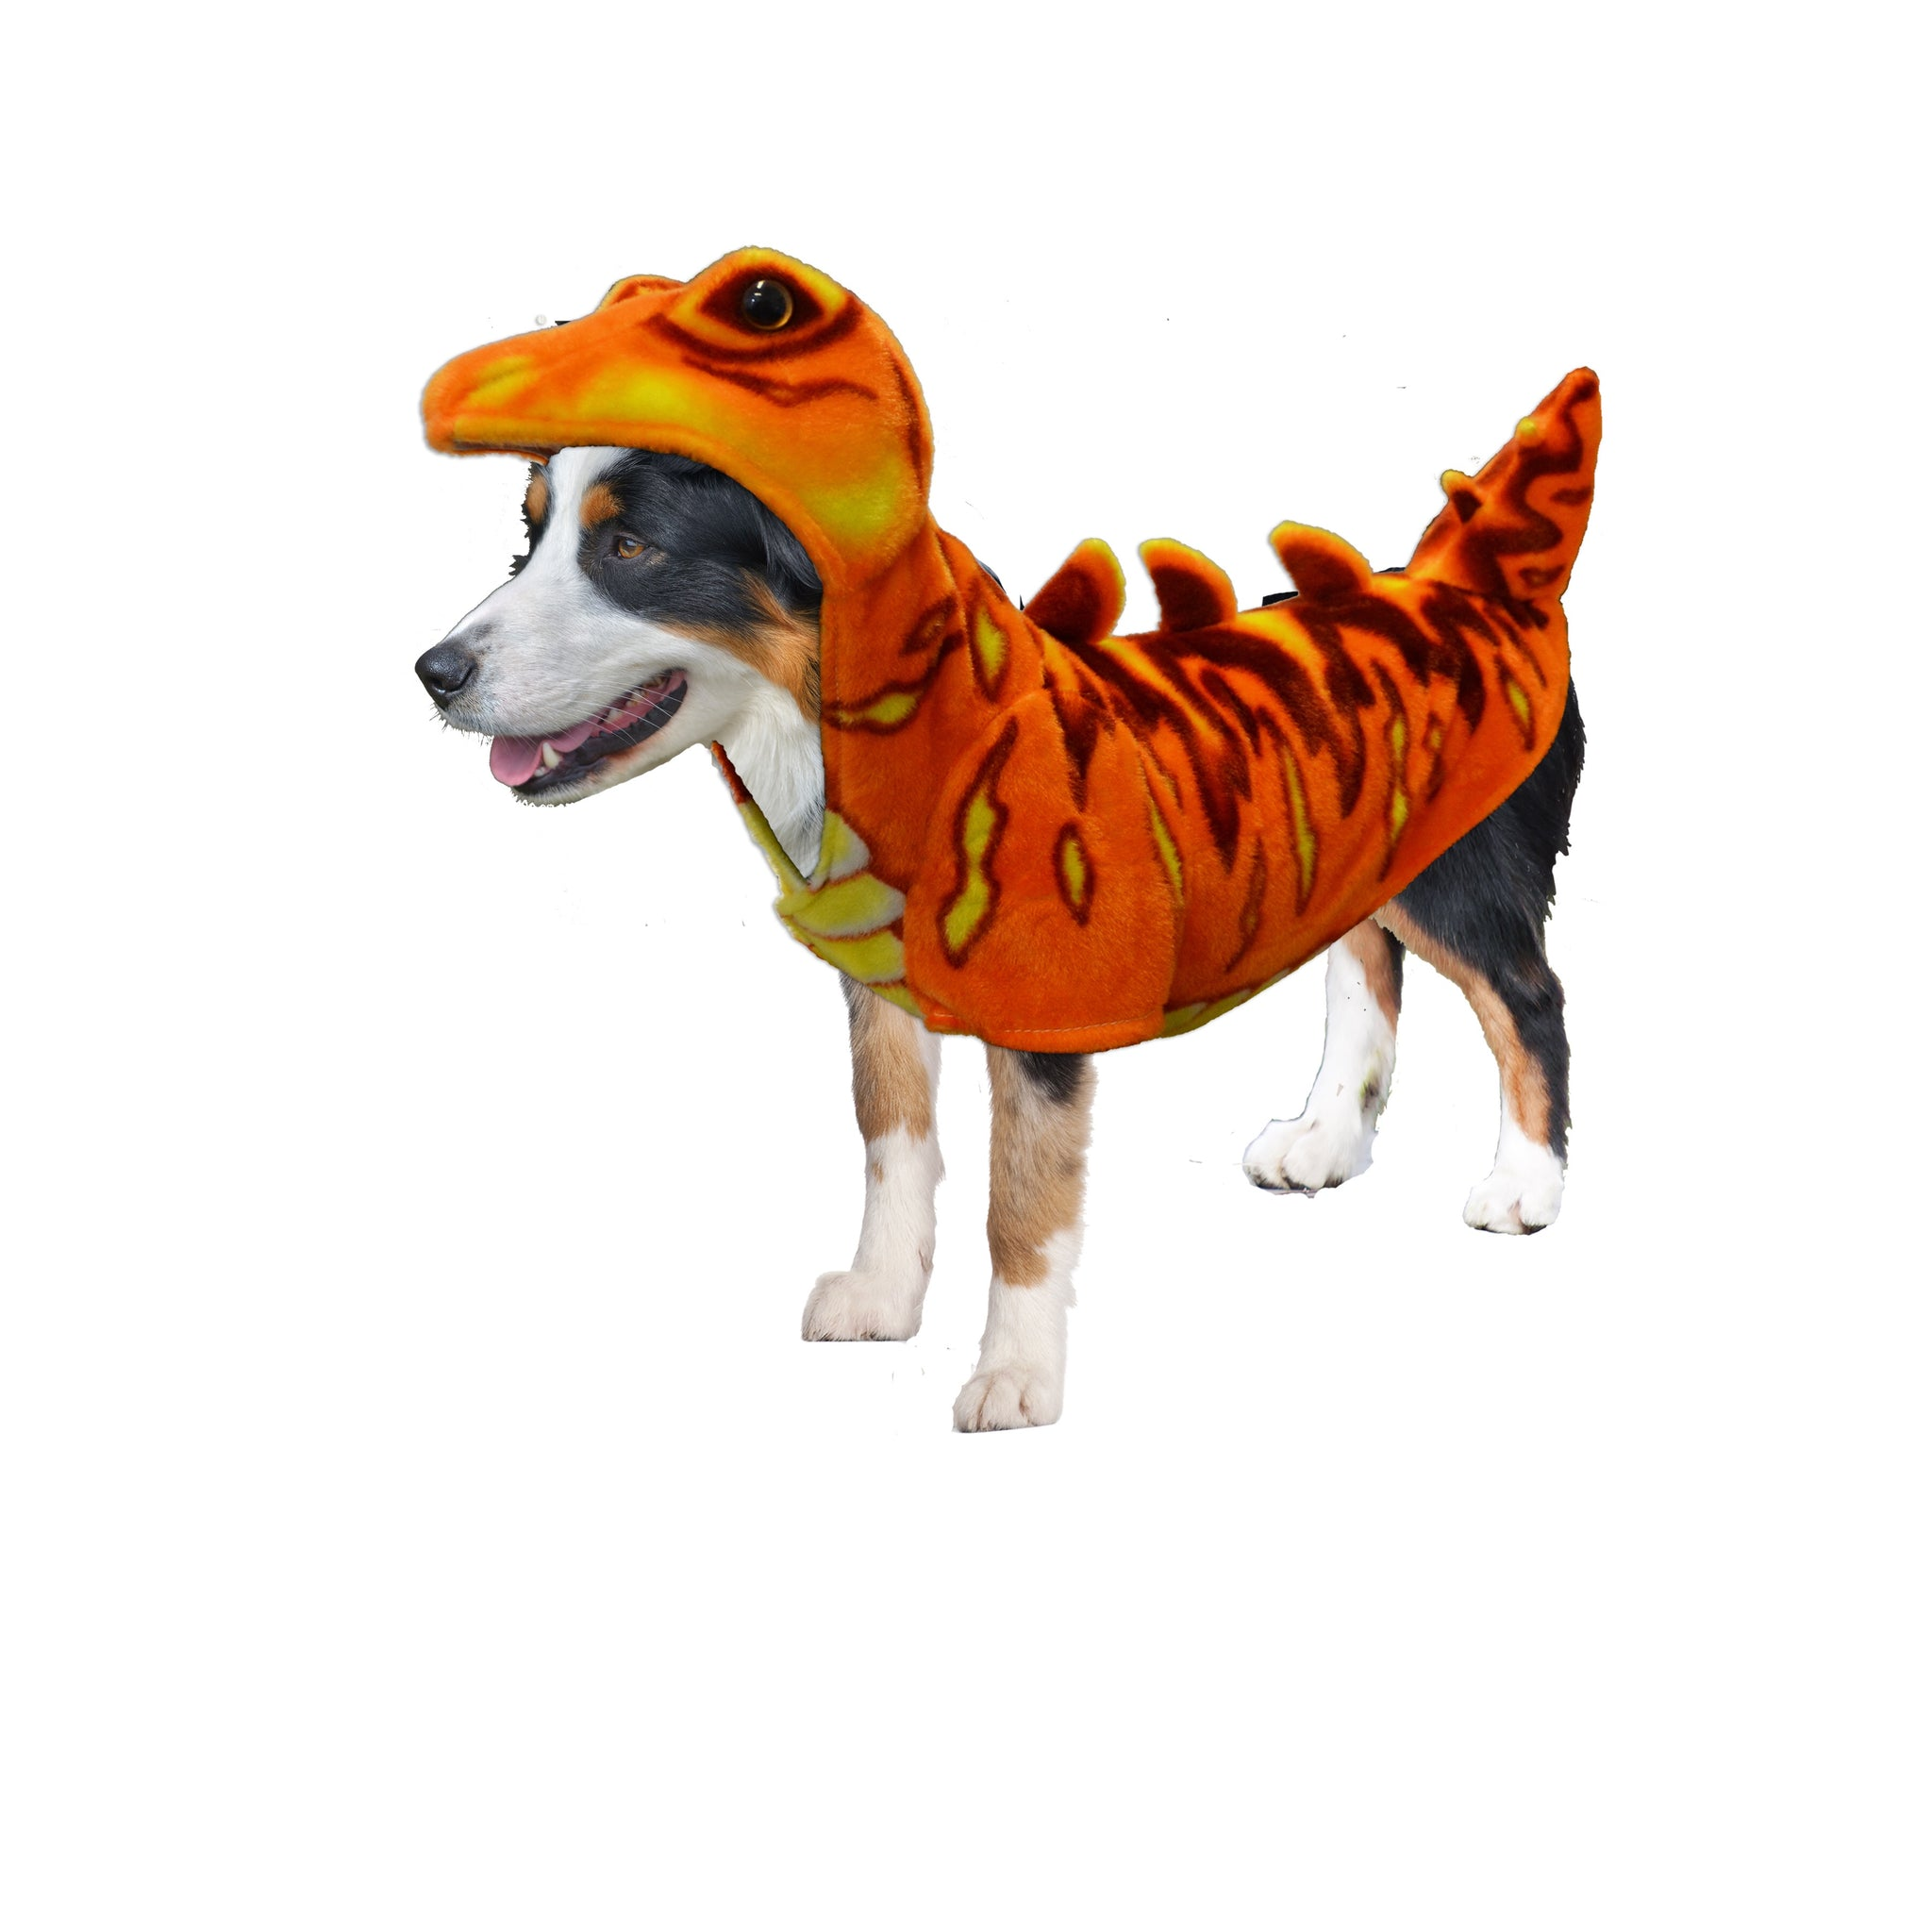 Dog Halloween Costumes | Orange Stegosaurus Dinosaur Costume